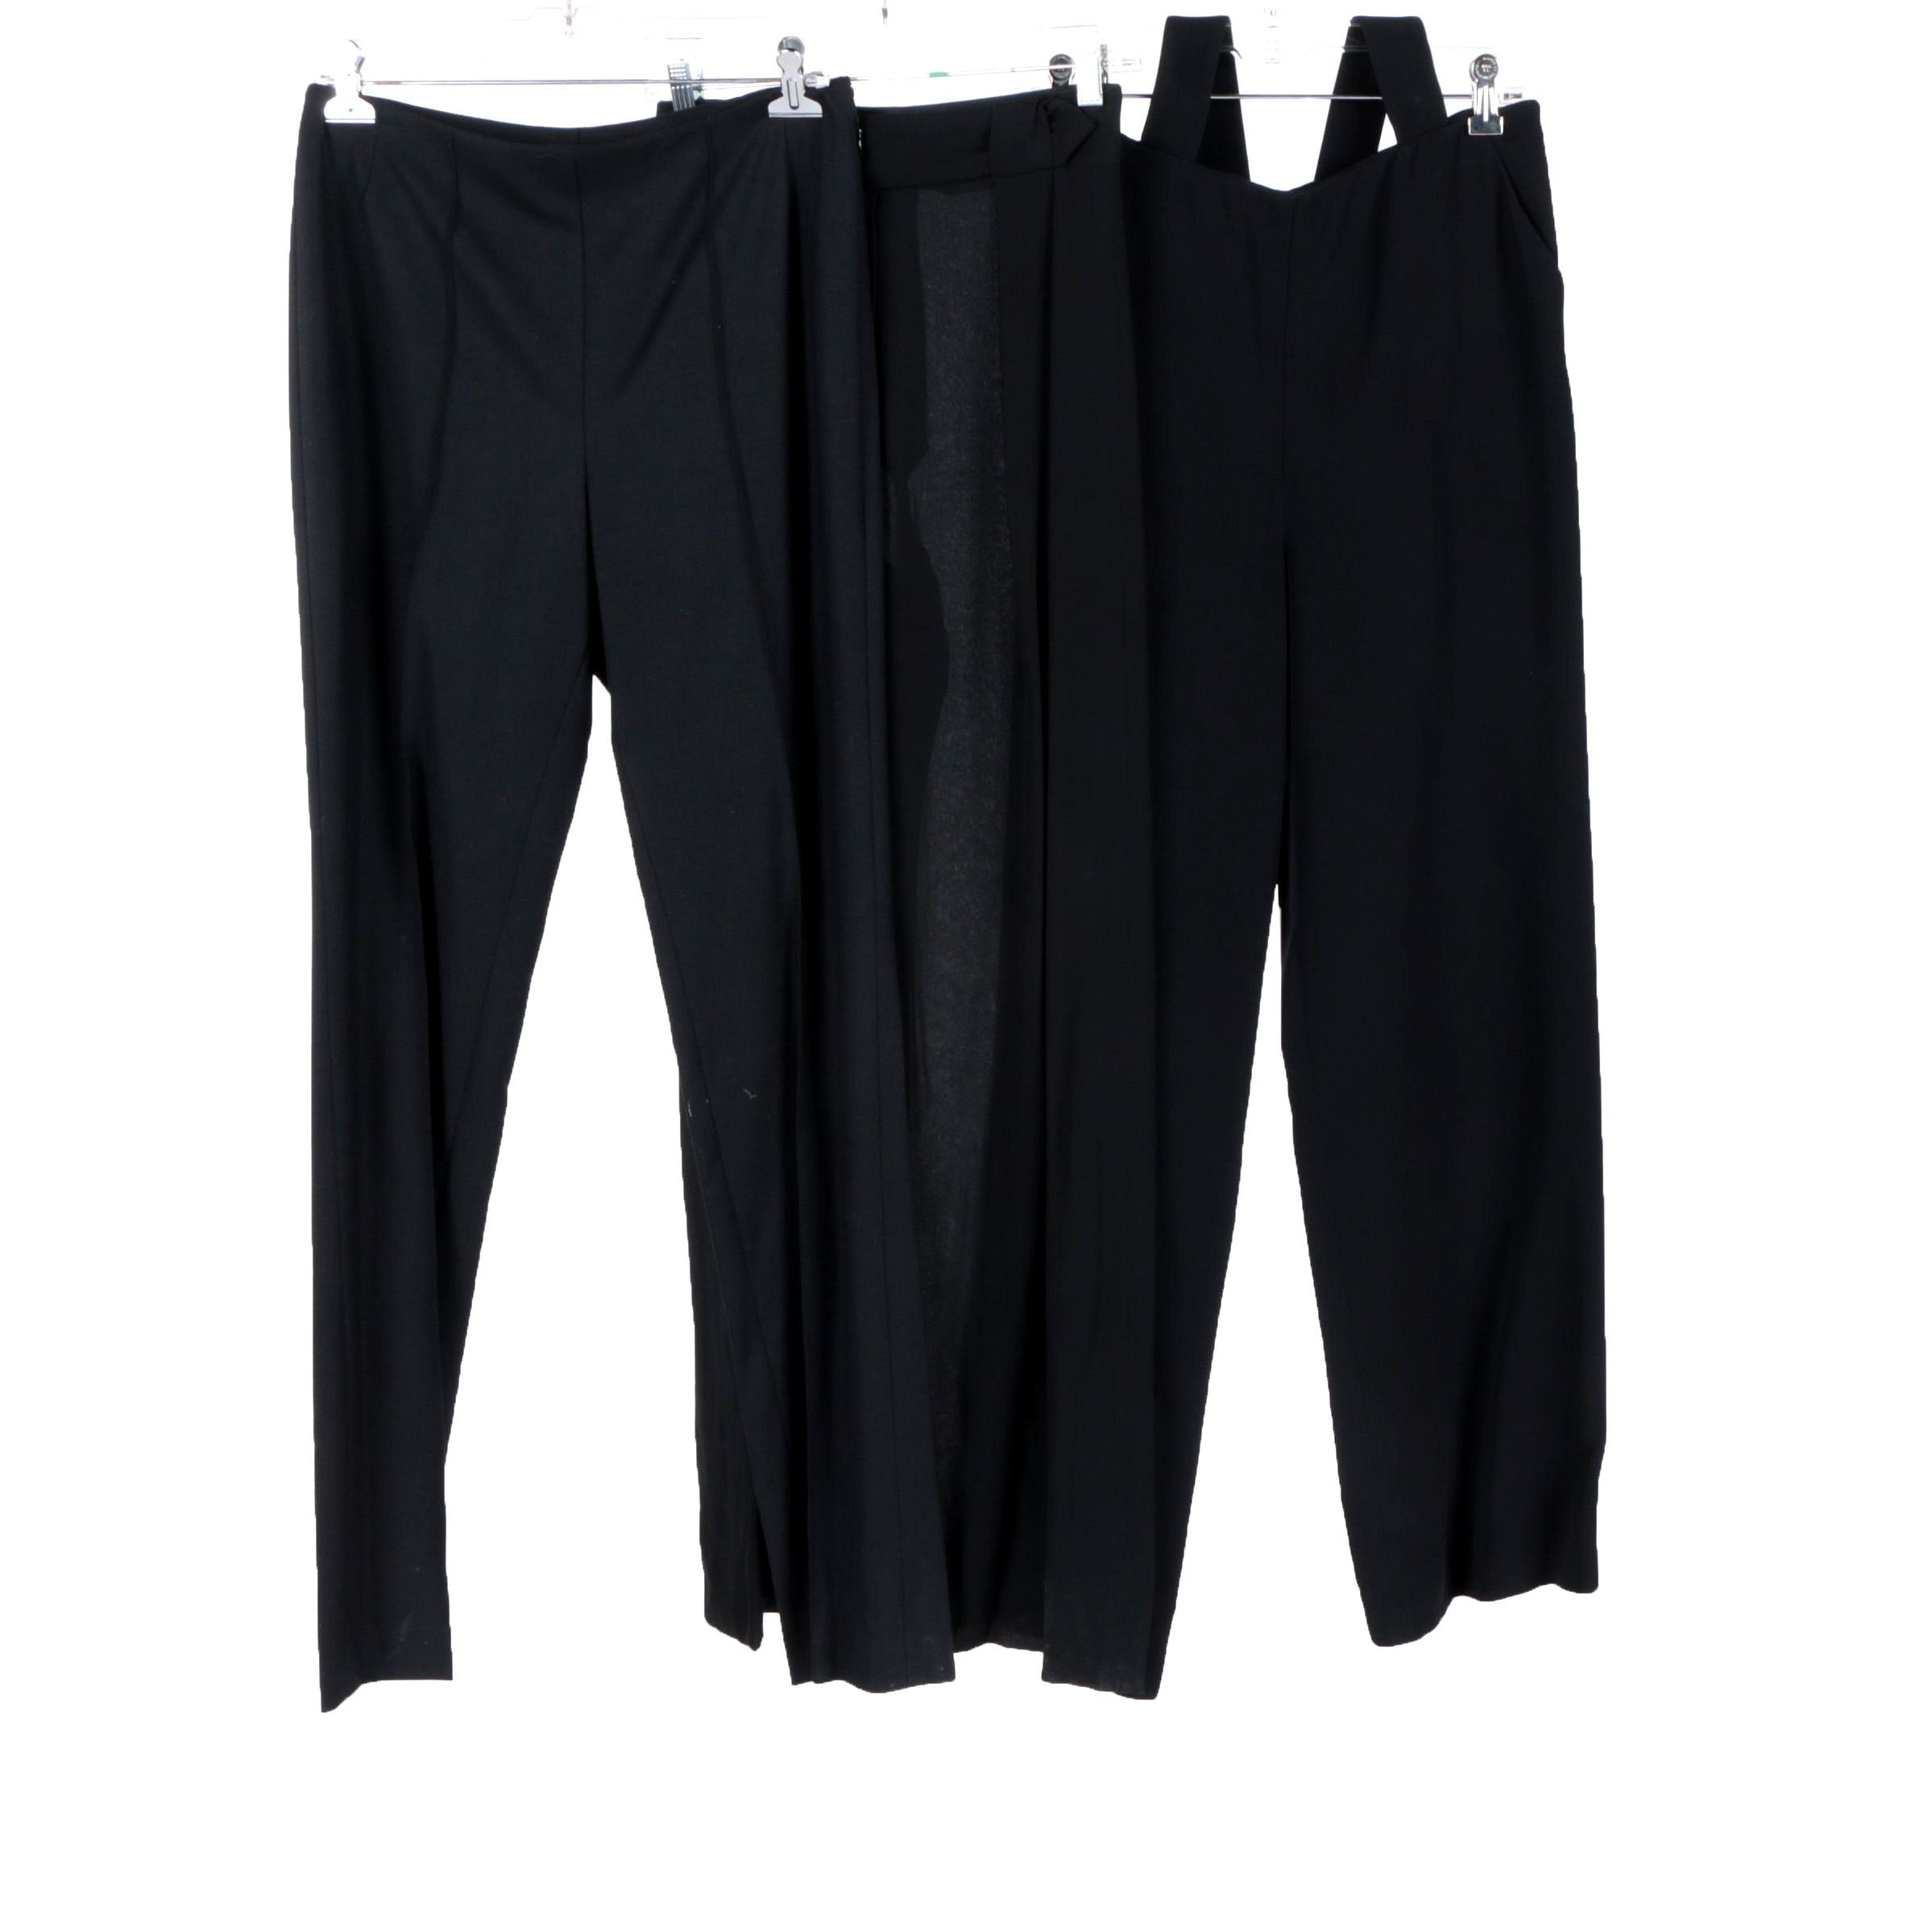 Women's Cardinali, Giorgio Armani and Akris Black Pants